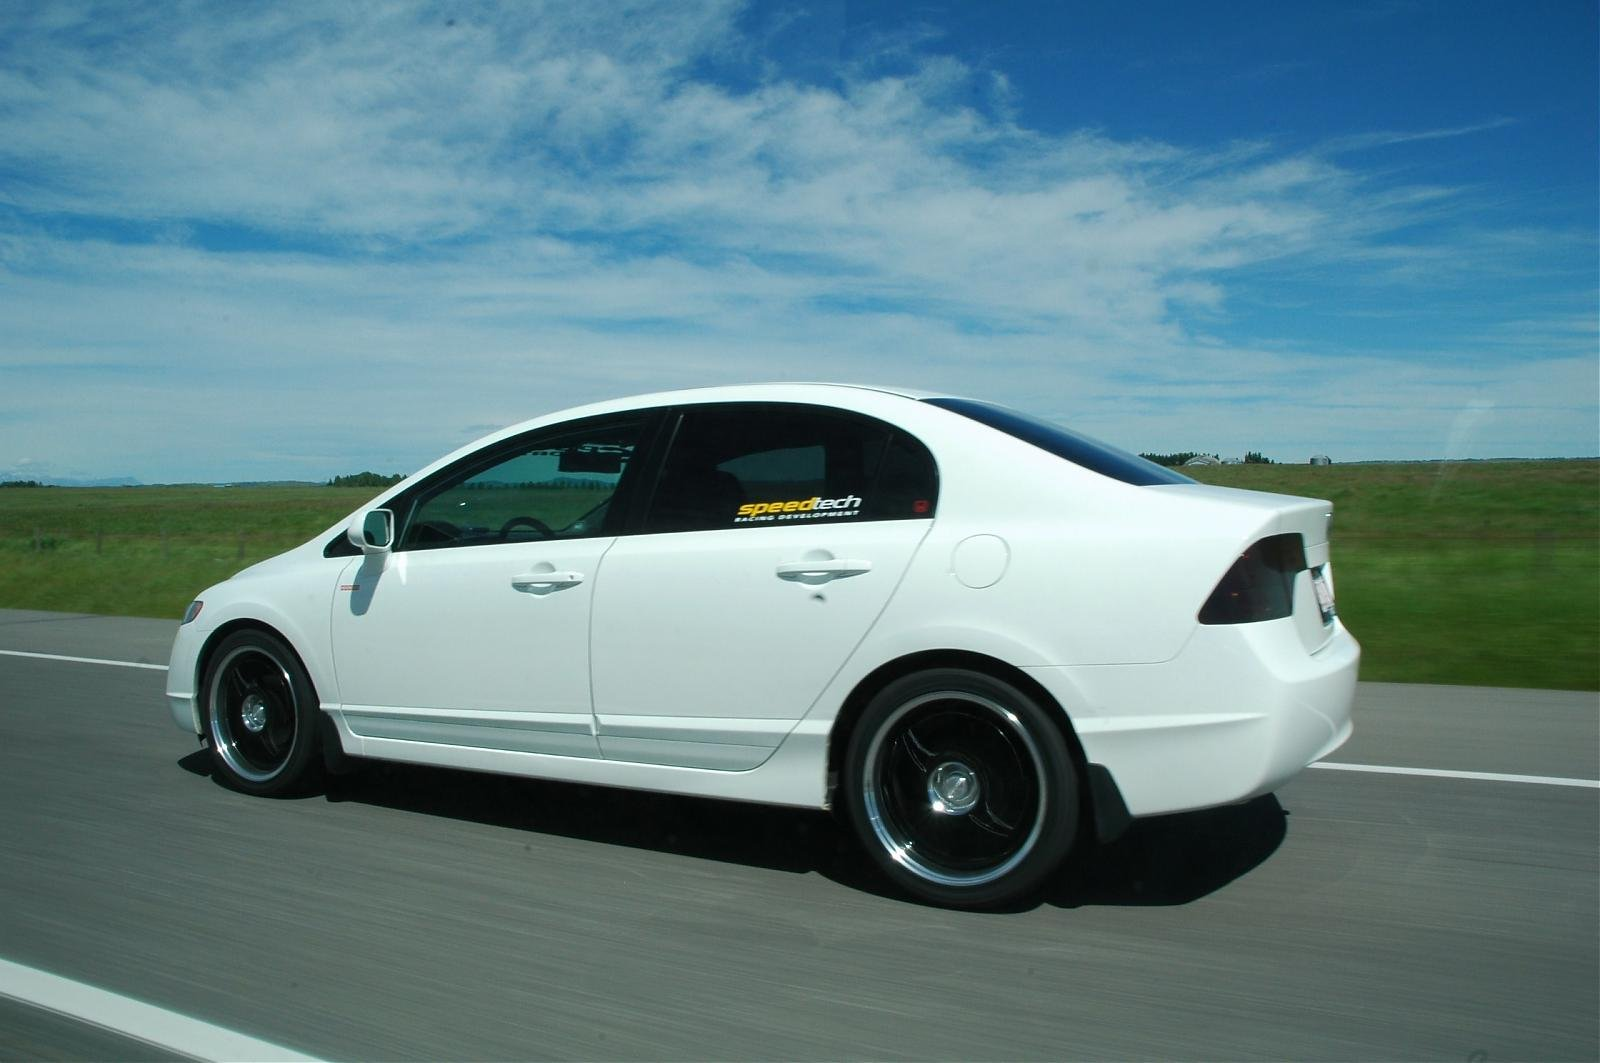 Aftermarket Wheels For Honda Civic Pictures